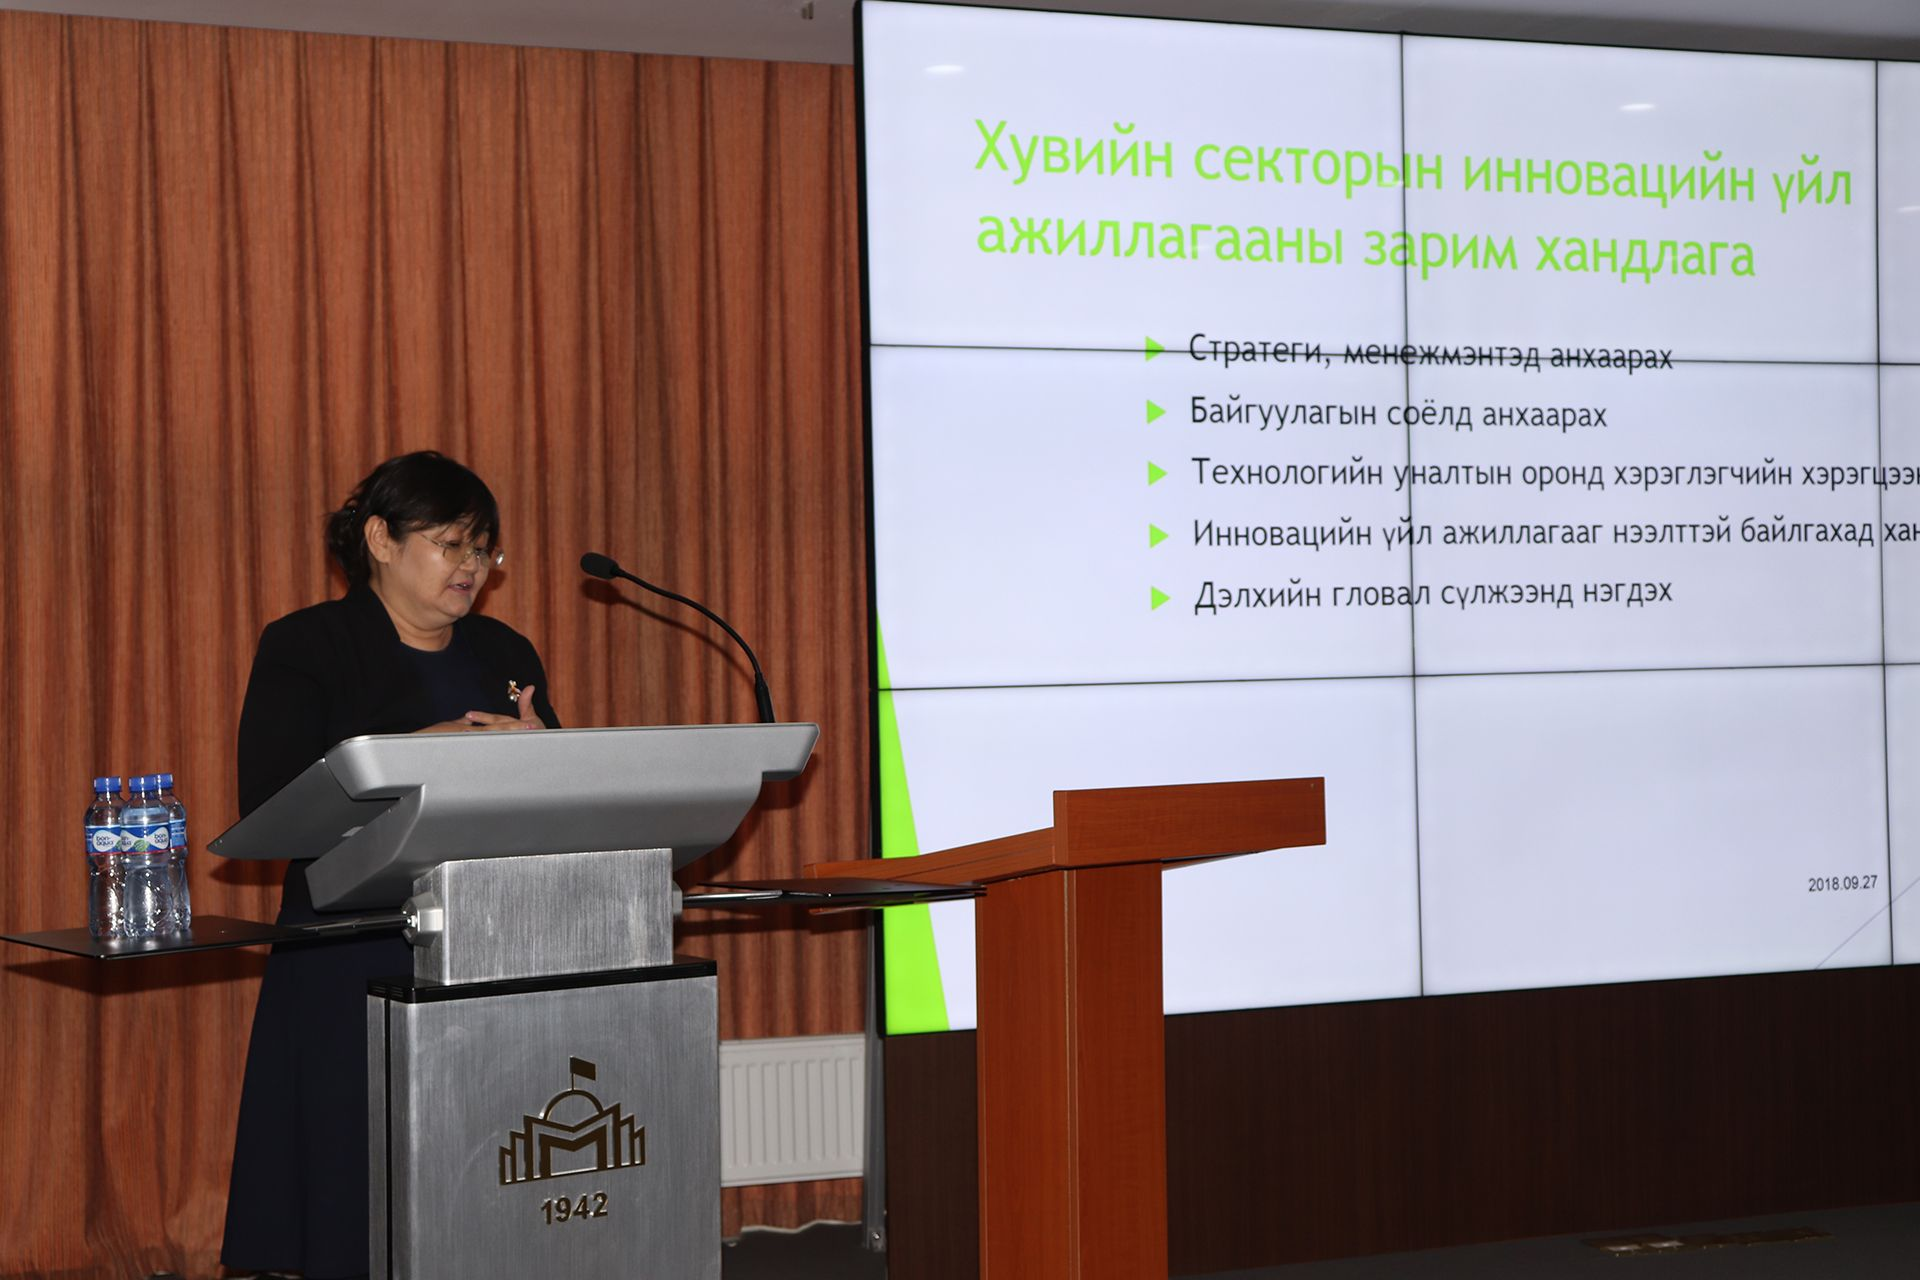 Erdenesan EldevOchir, Head of Economic Statistics Department, National Statistics Office of Mongolia